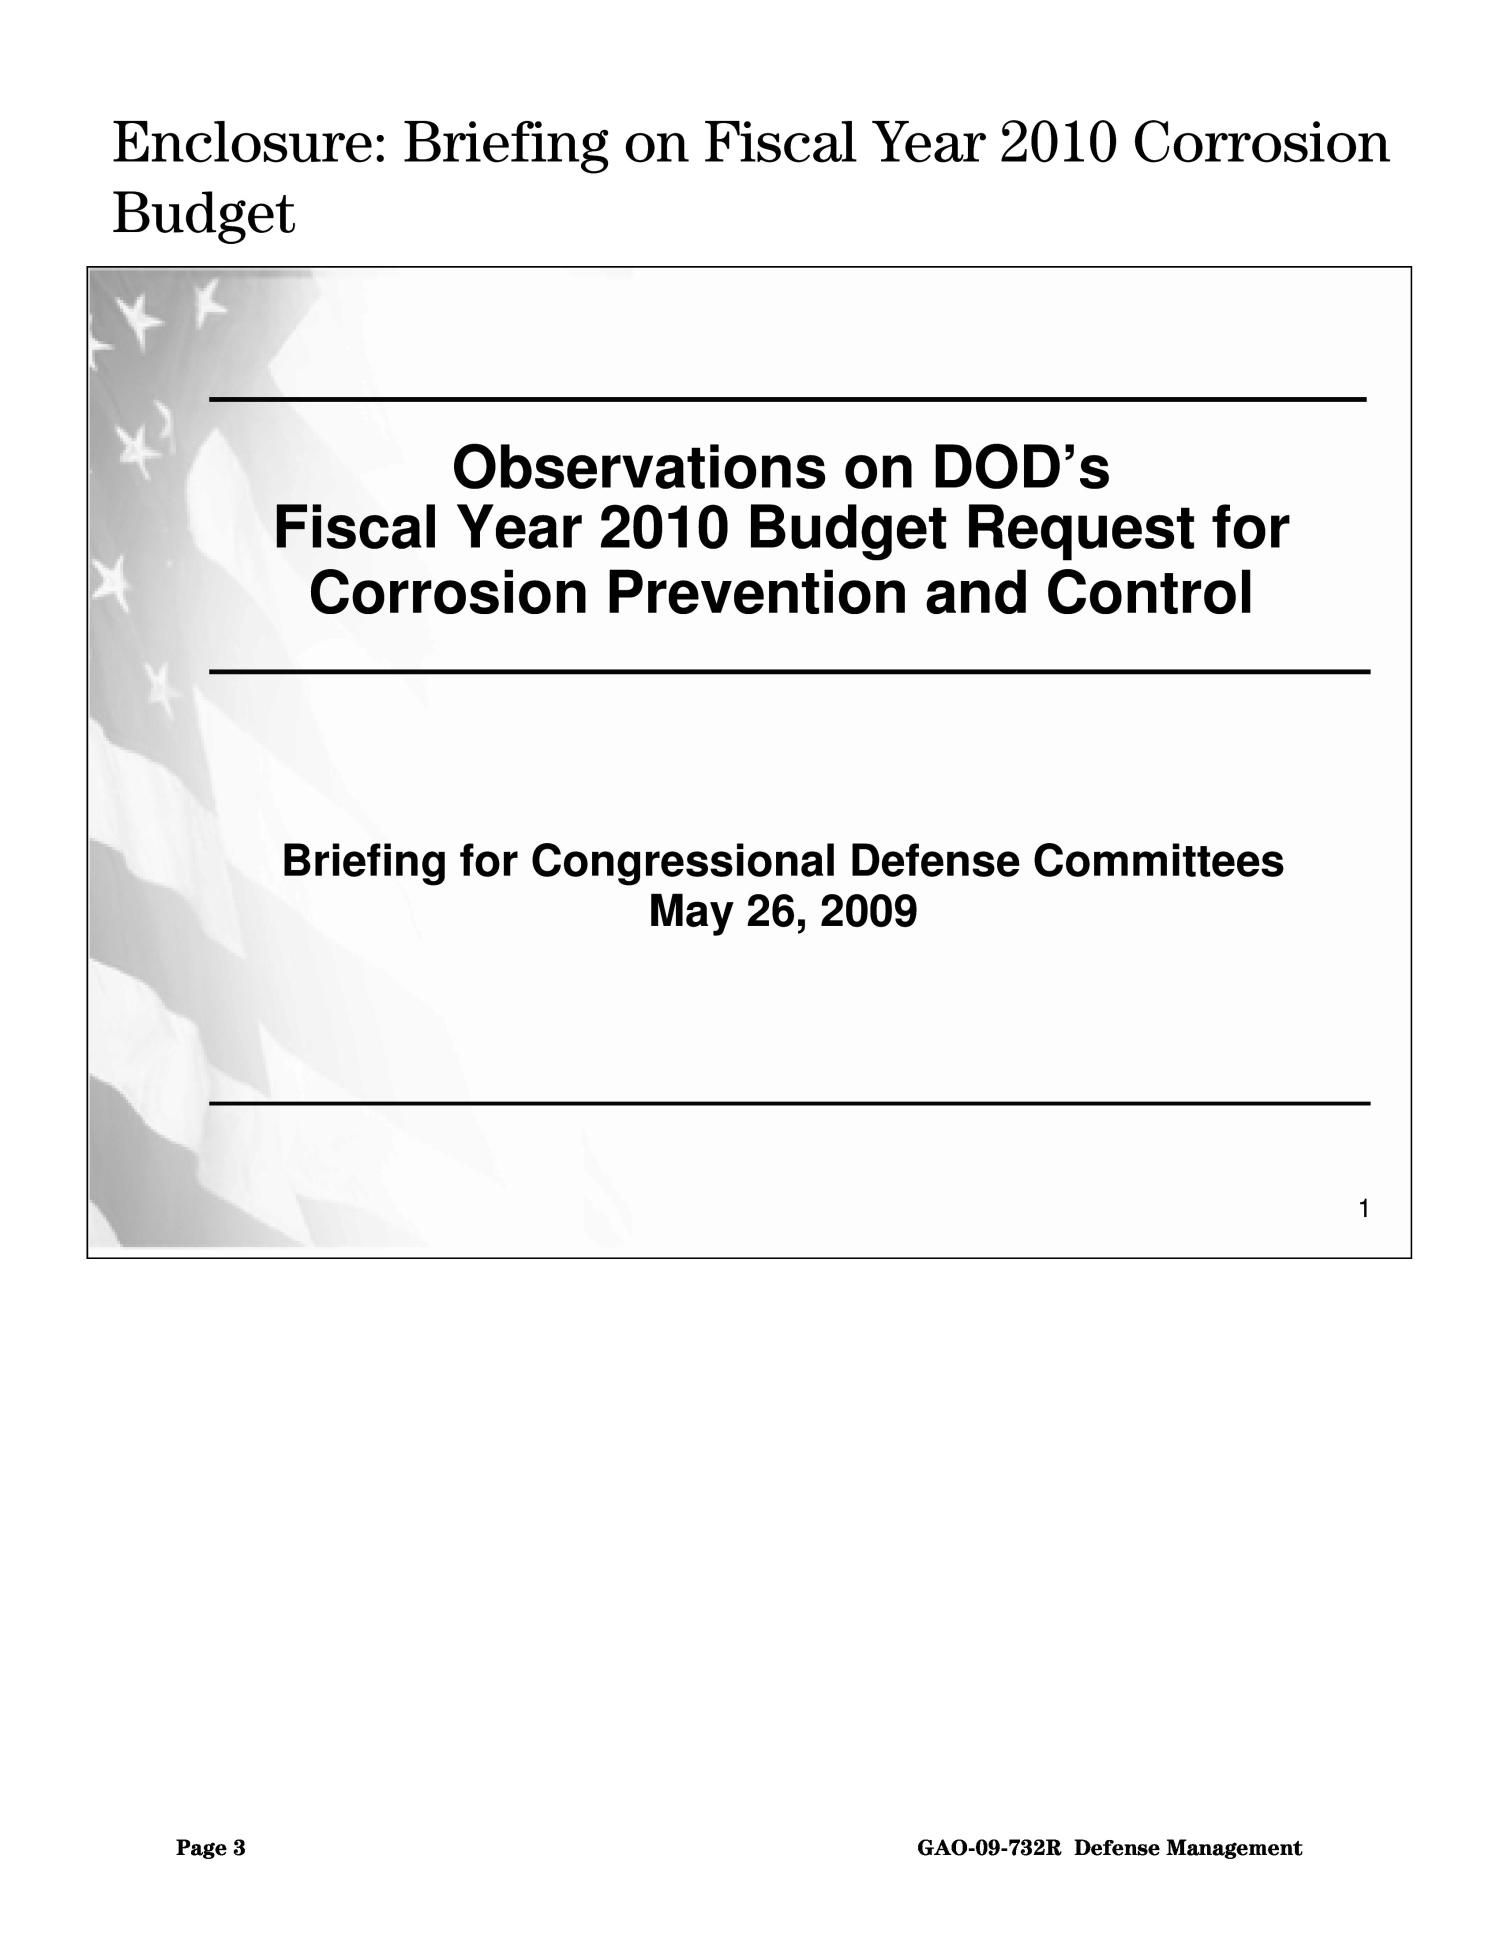 Defense Management: Observations on DOD's Fiscal Year 2010 Budget Request for Corrosion Prevention and Control                                                                                                      [Sequence #]: 3 of 21